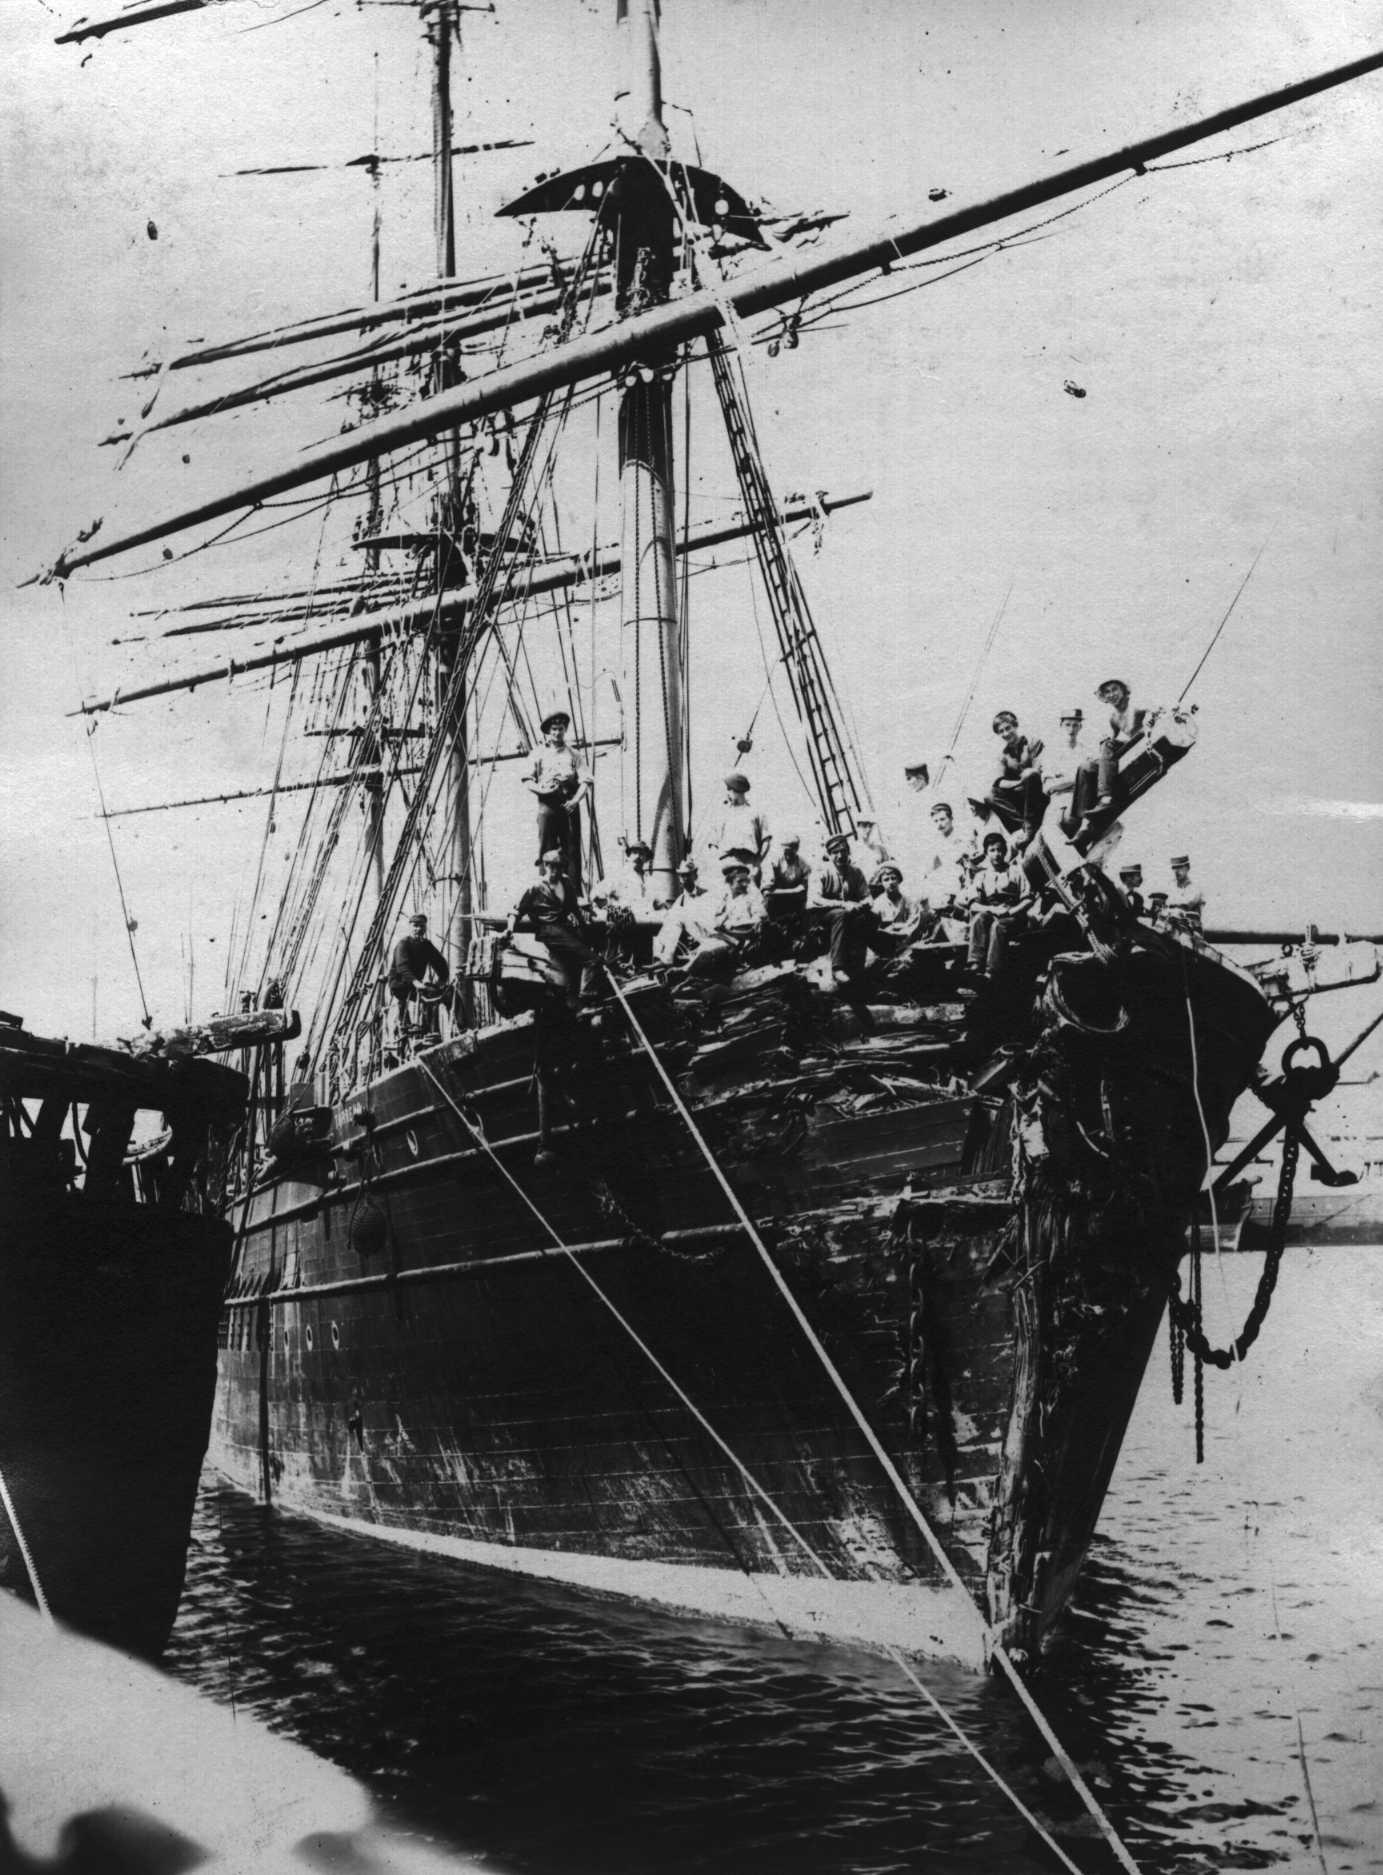 Damaged in Port Adelaide, 1899 after colliding with an iceburg.